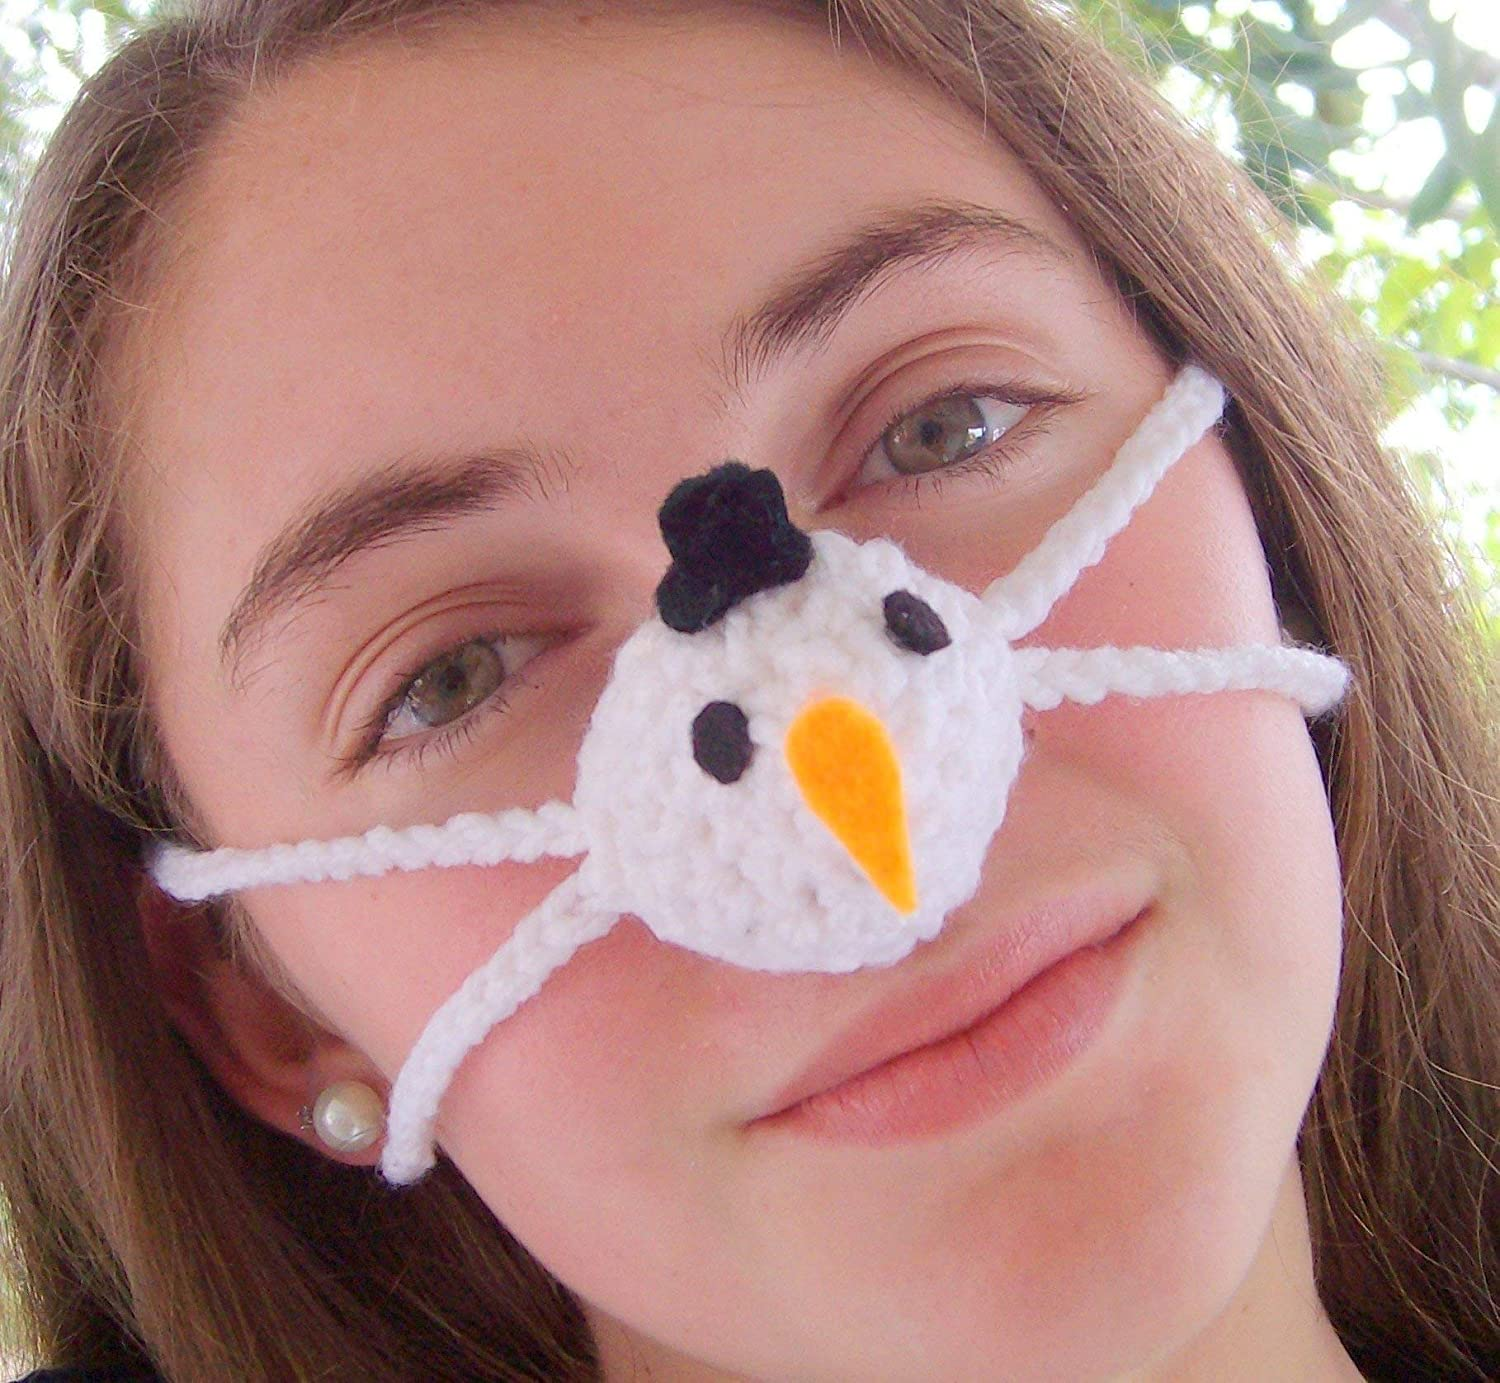 Snowman Nose - Nose Warmer by Aunt Marty's Original Nose Warmers